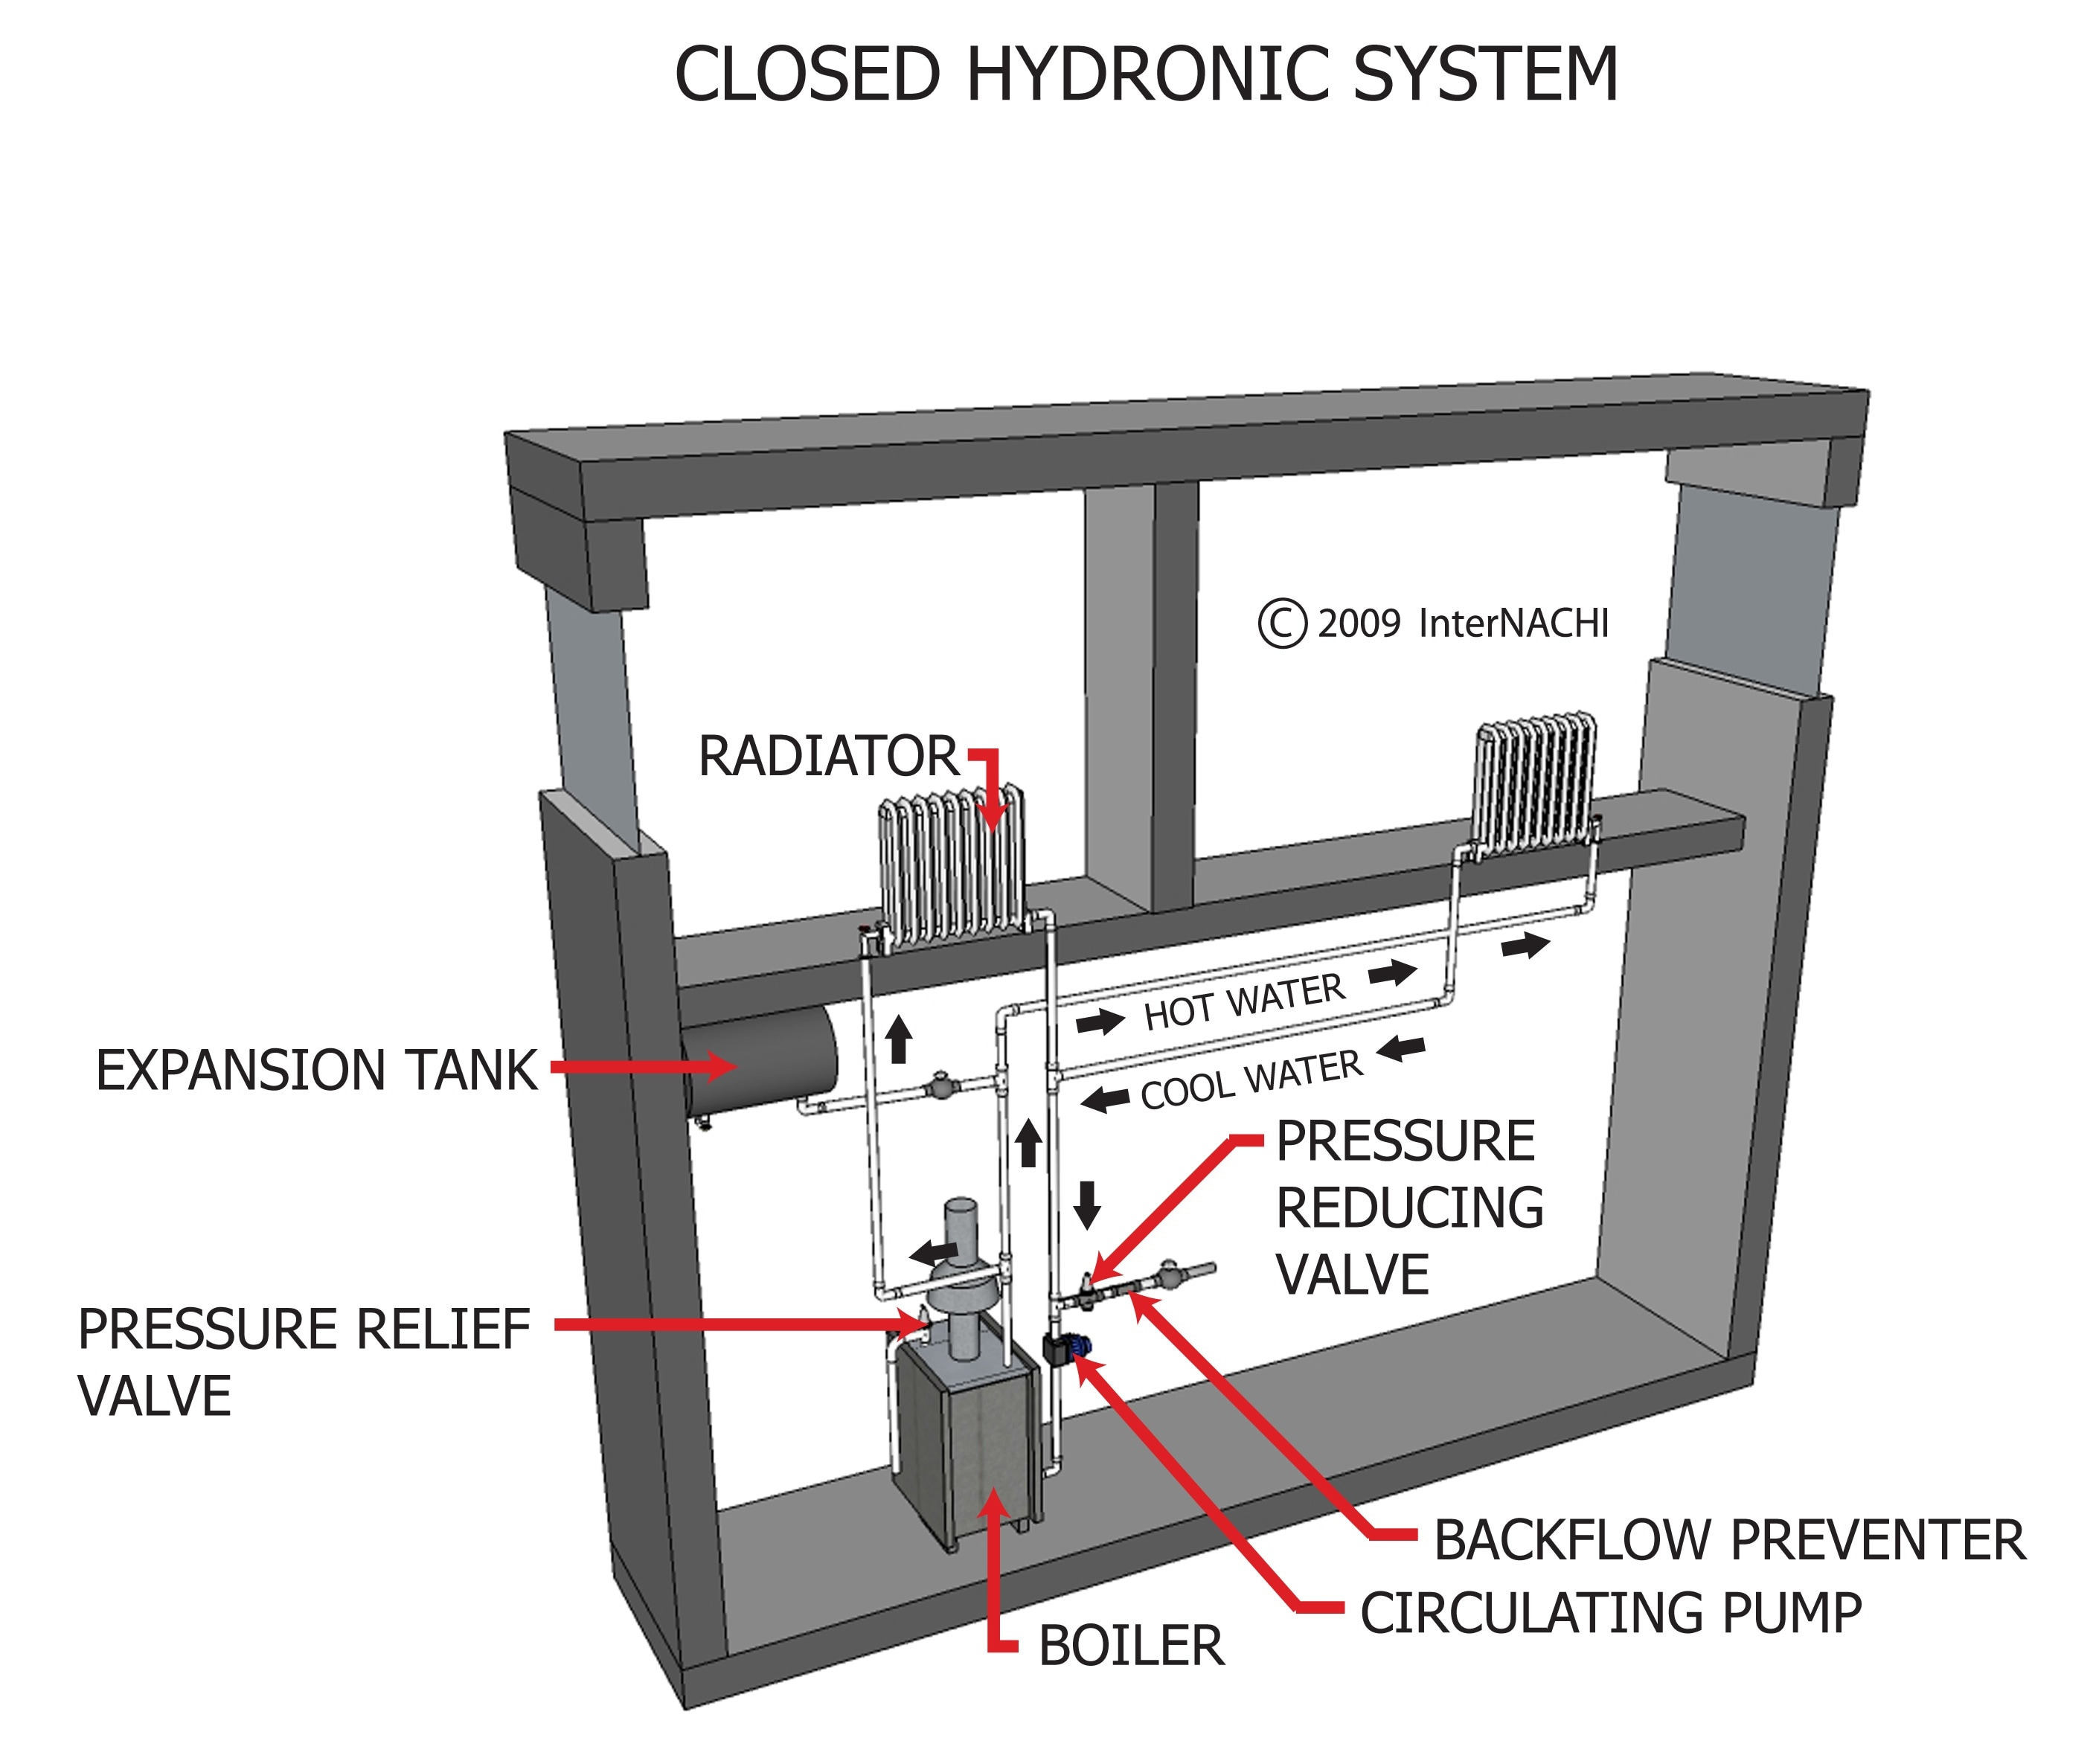 Closed hydronic system.